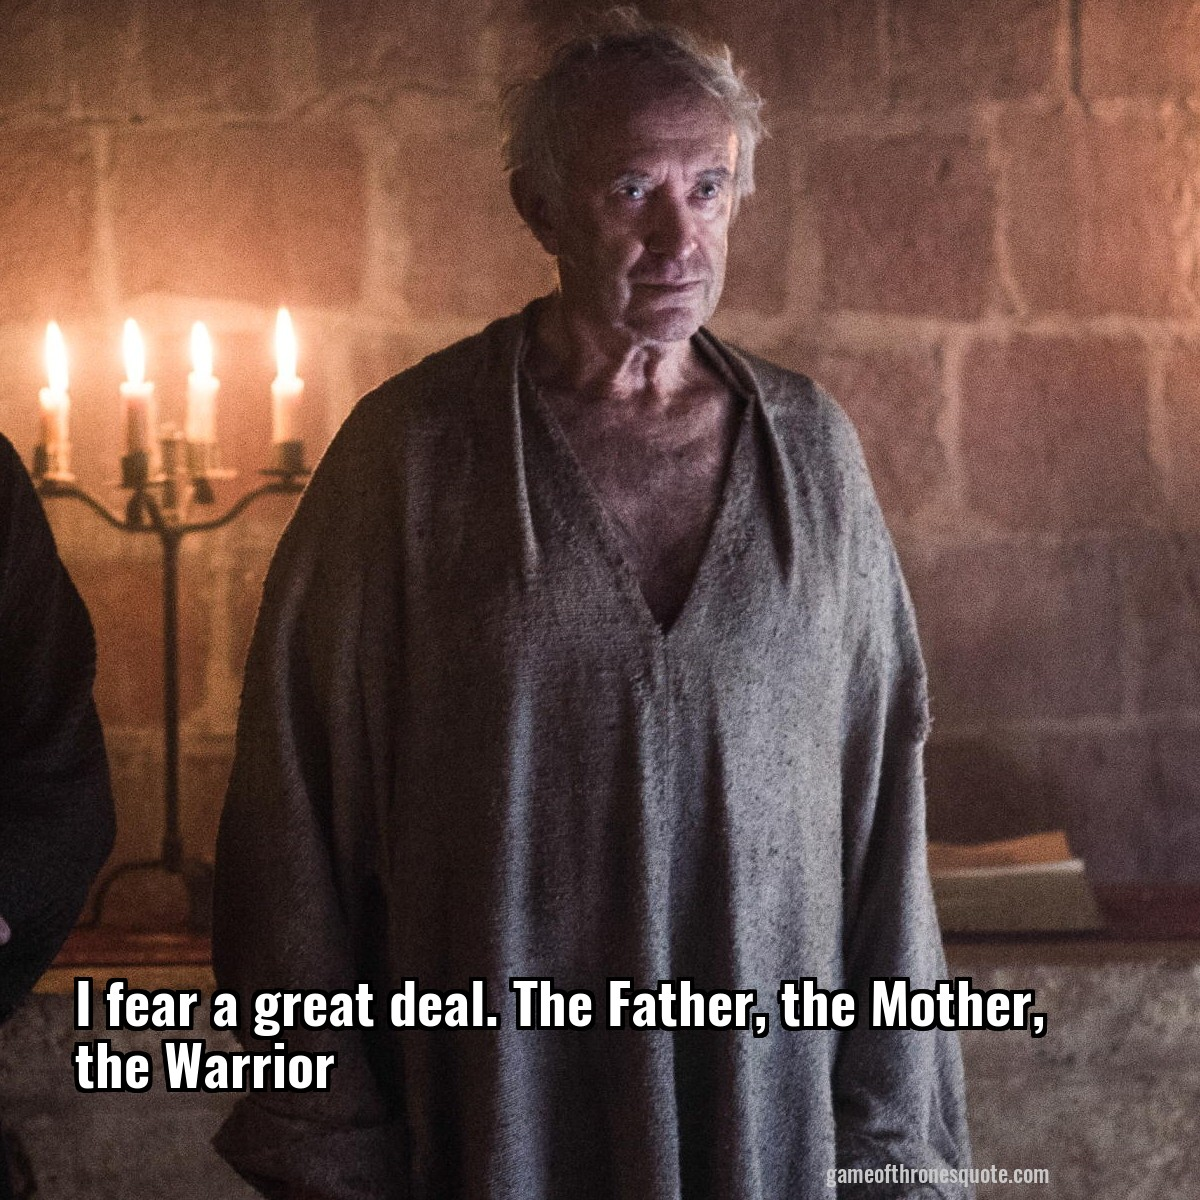 I fear a great deal. The Father, the Mother, the Warrior